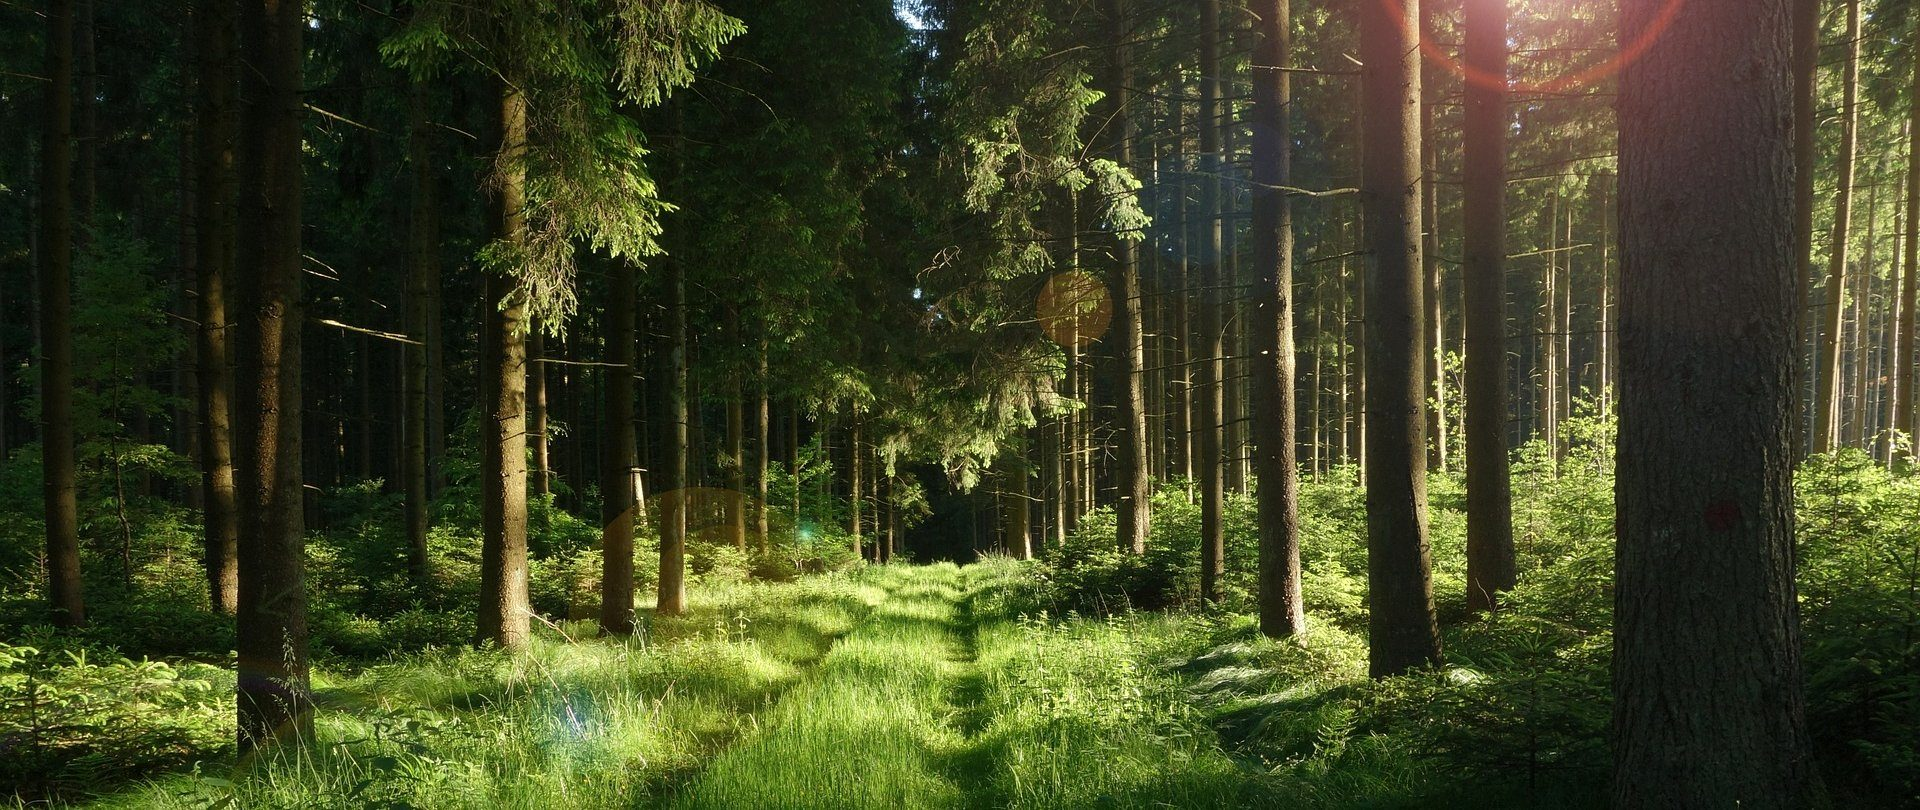 Hiking - Discover Bory Tucholskie step by step